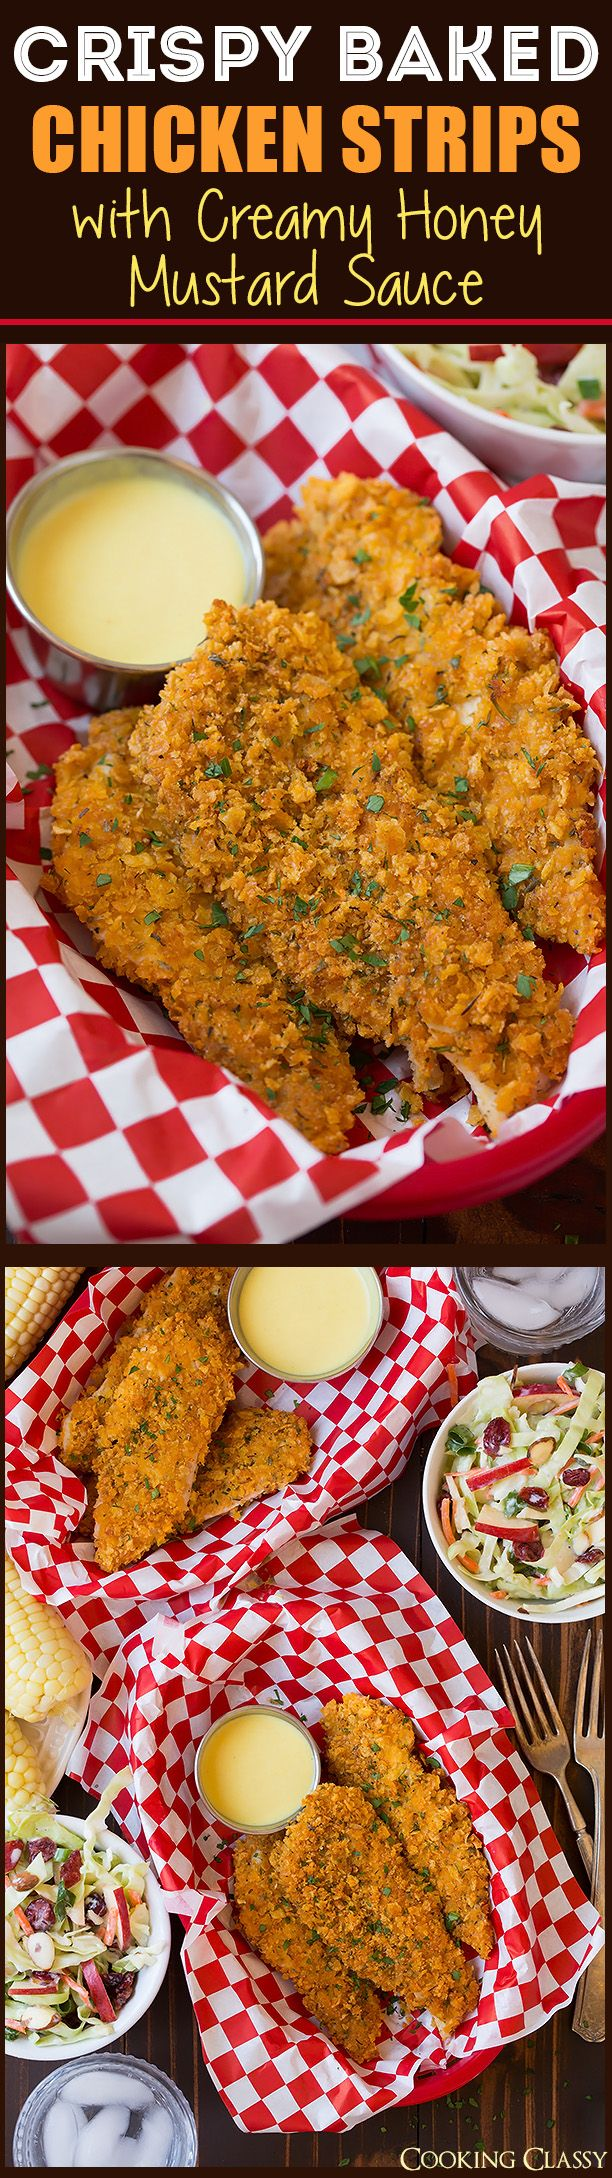 Crispy Baked Chicken Strips with Creamy Honey Mustard Dipping Sauce | Cooking Classy